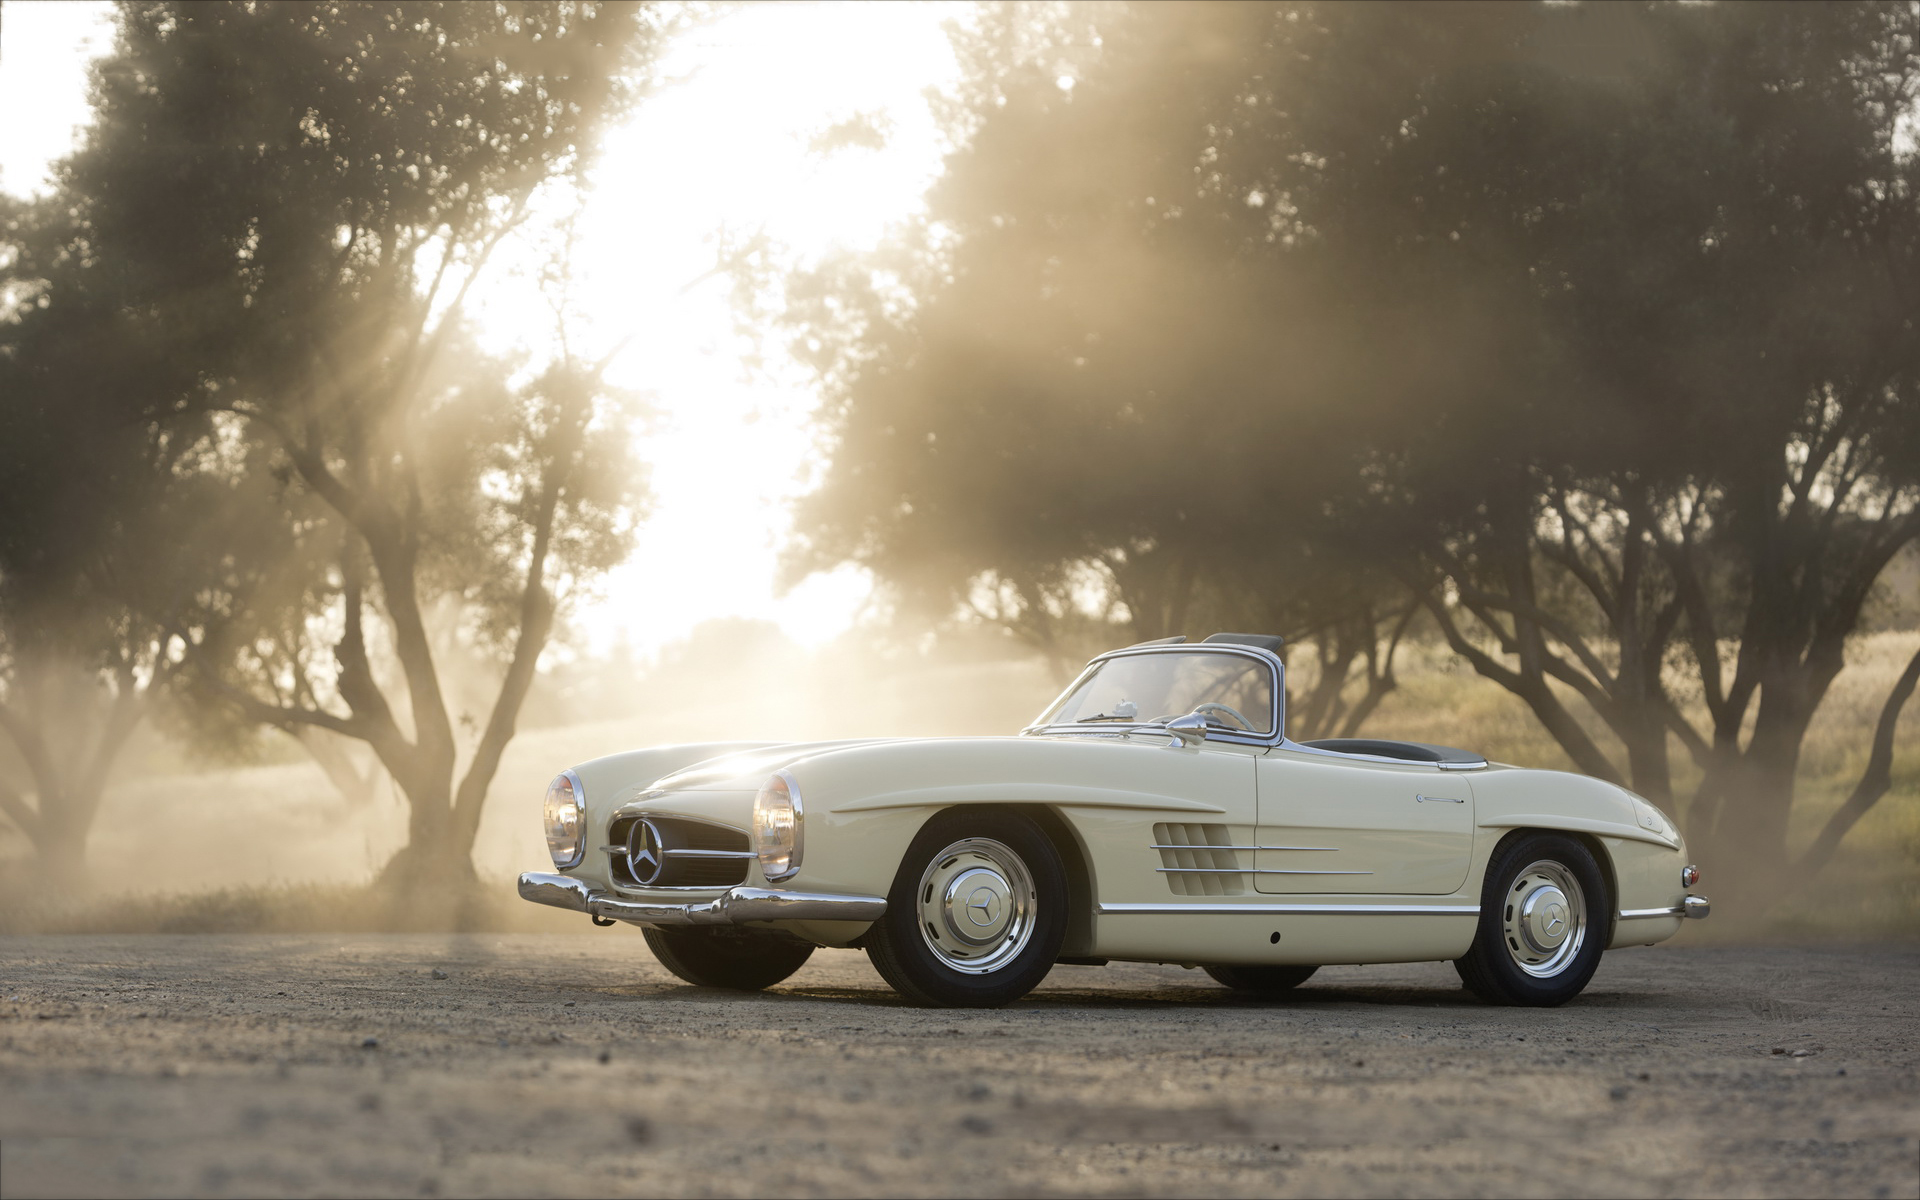 Merecedes 300sl classic hd cars 4k wallpapers images for Vintage mercedes benz